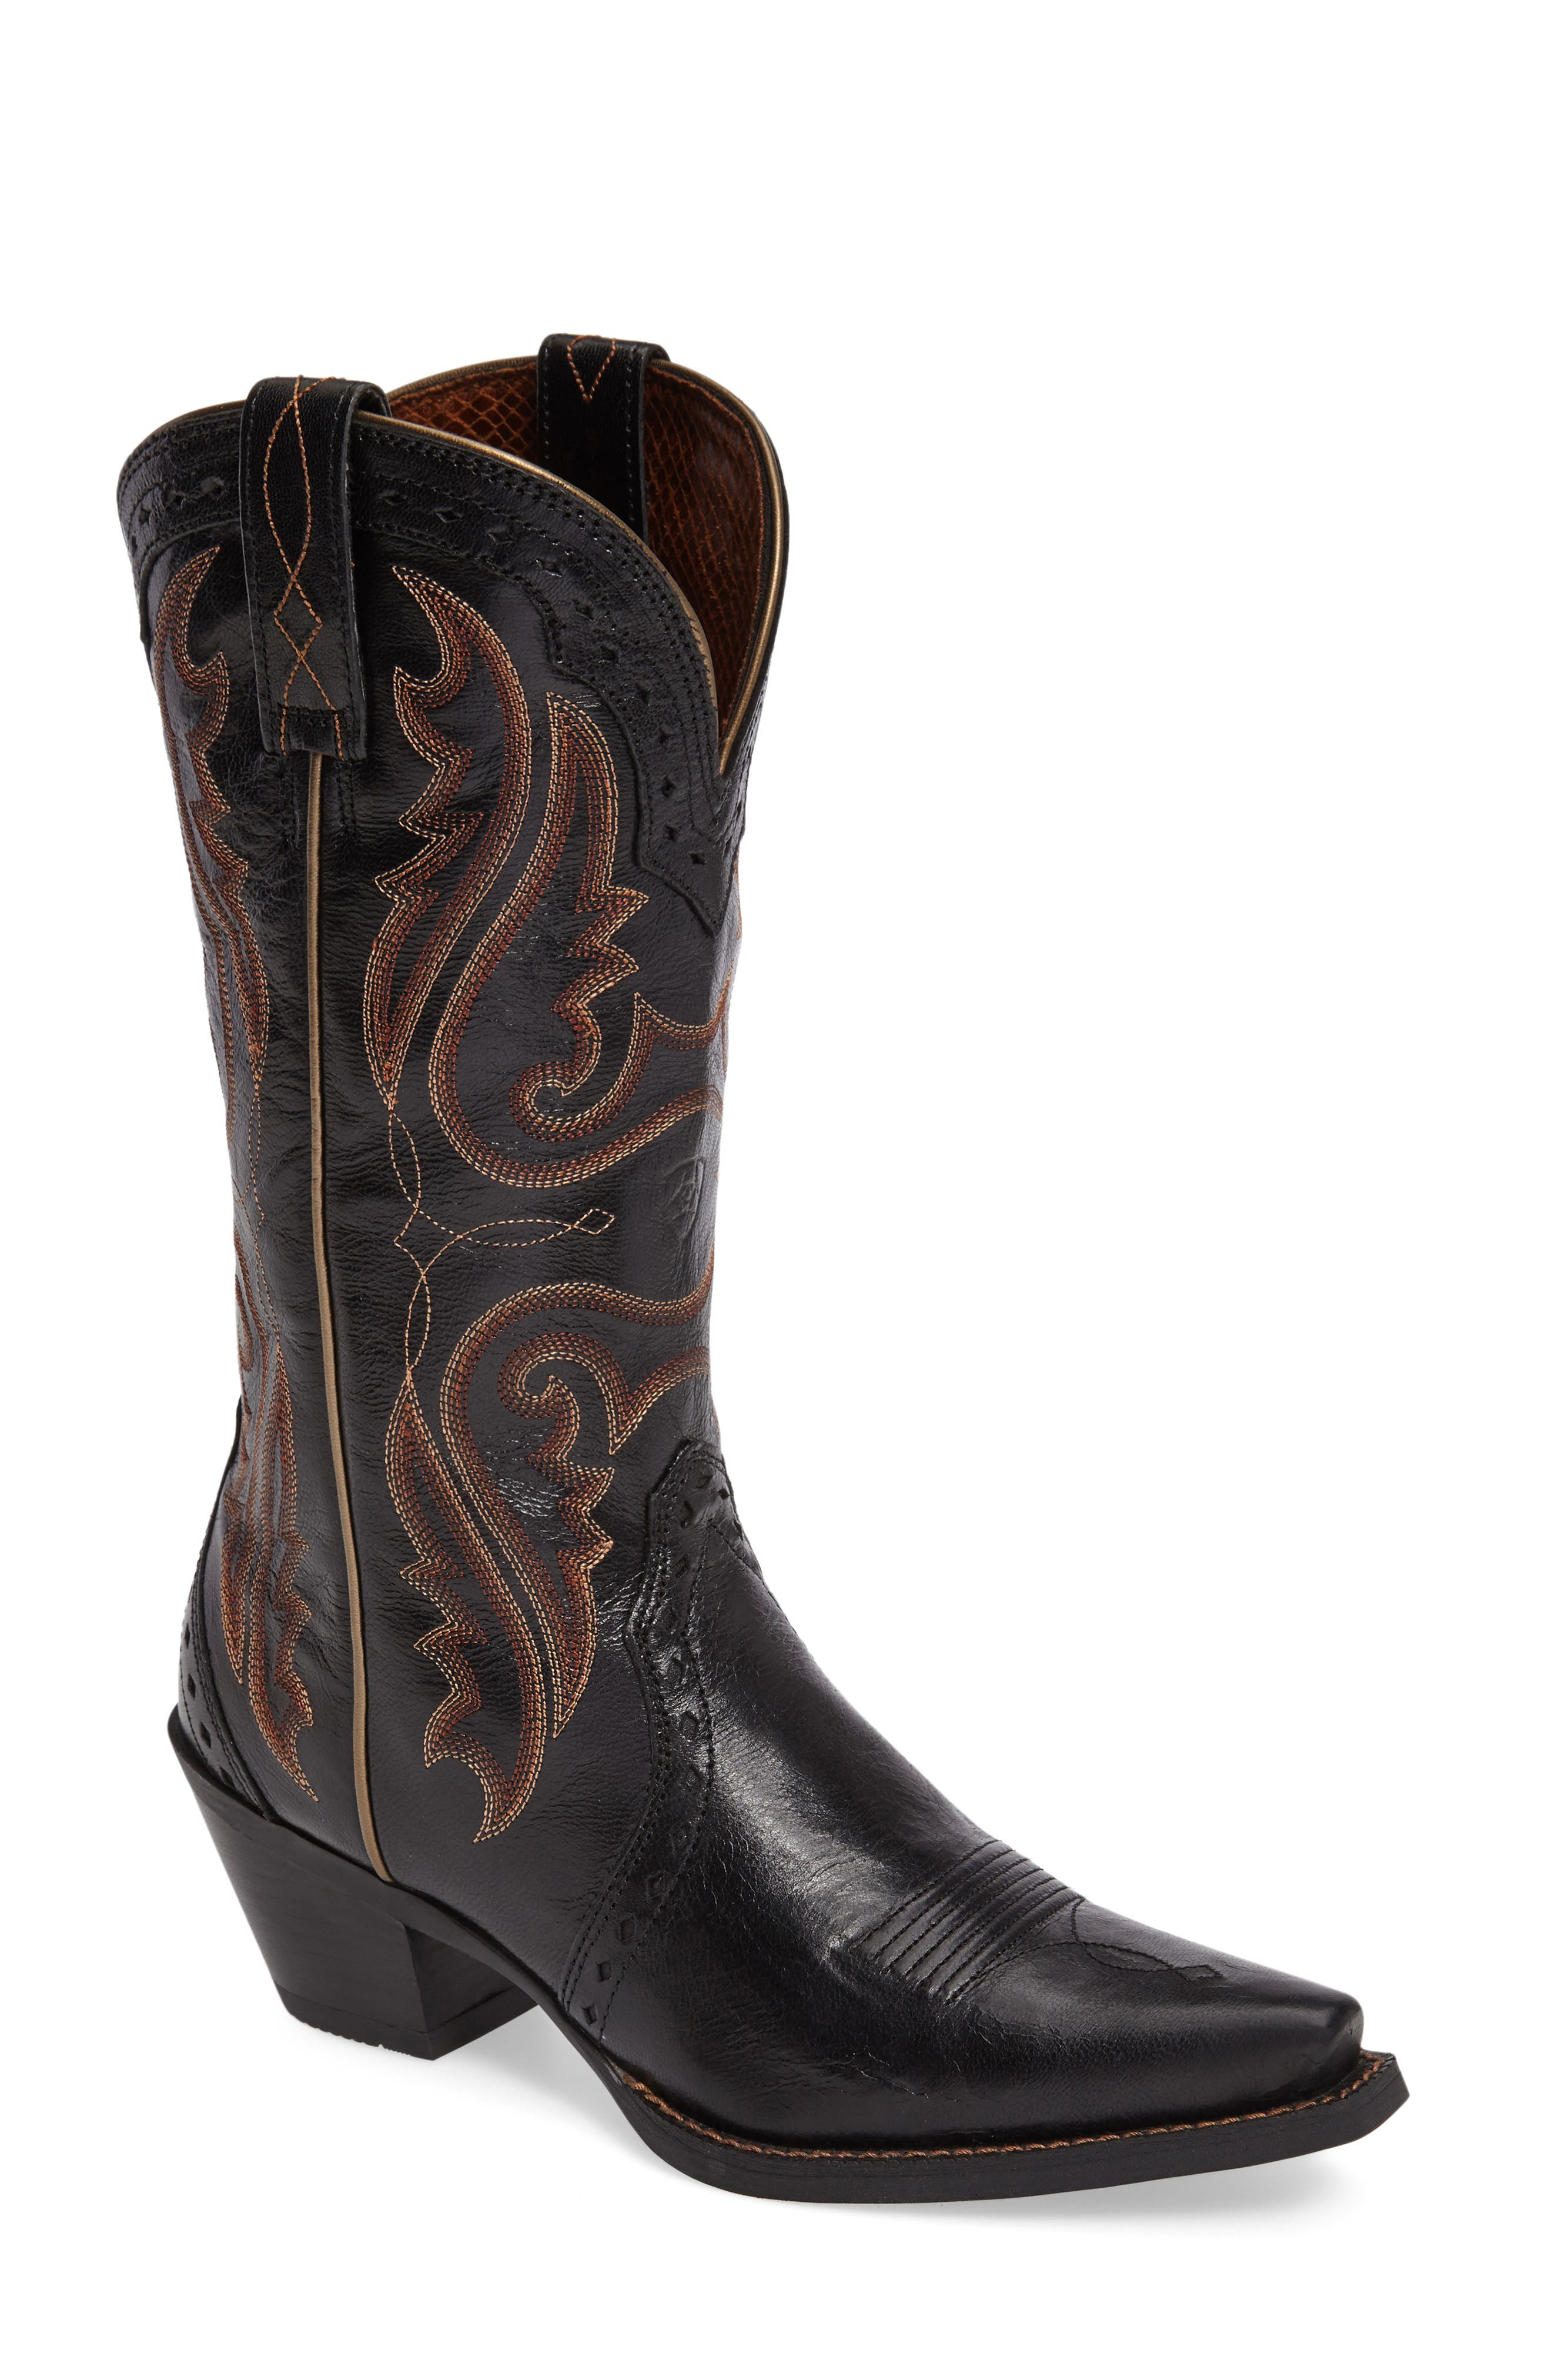 Alternate Image 1 Selected - Ariat 'Western Heritage X Toe' Boot